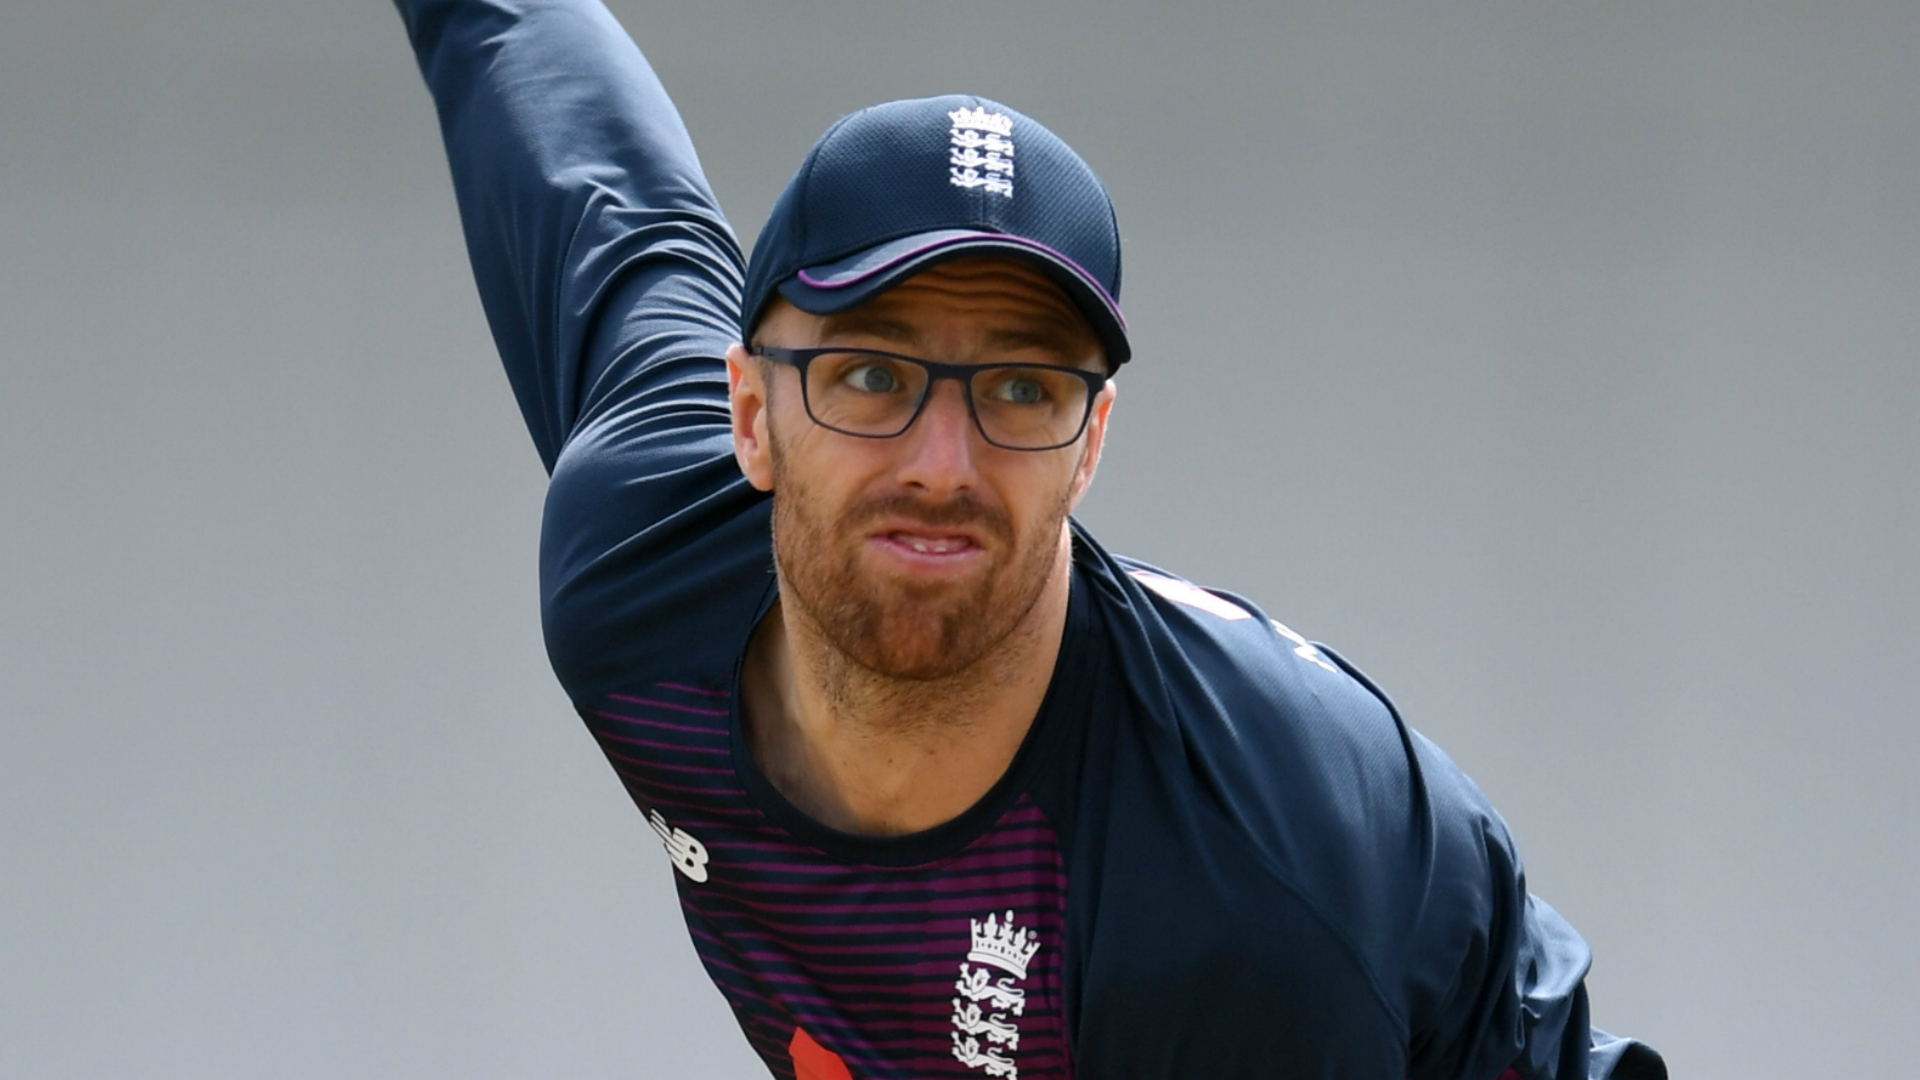 Ashes 2019: I have to make sure they are clean! - Leach explains glasses regimen